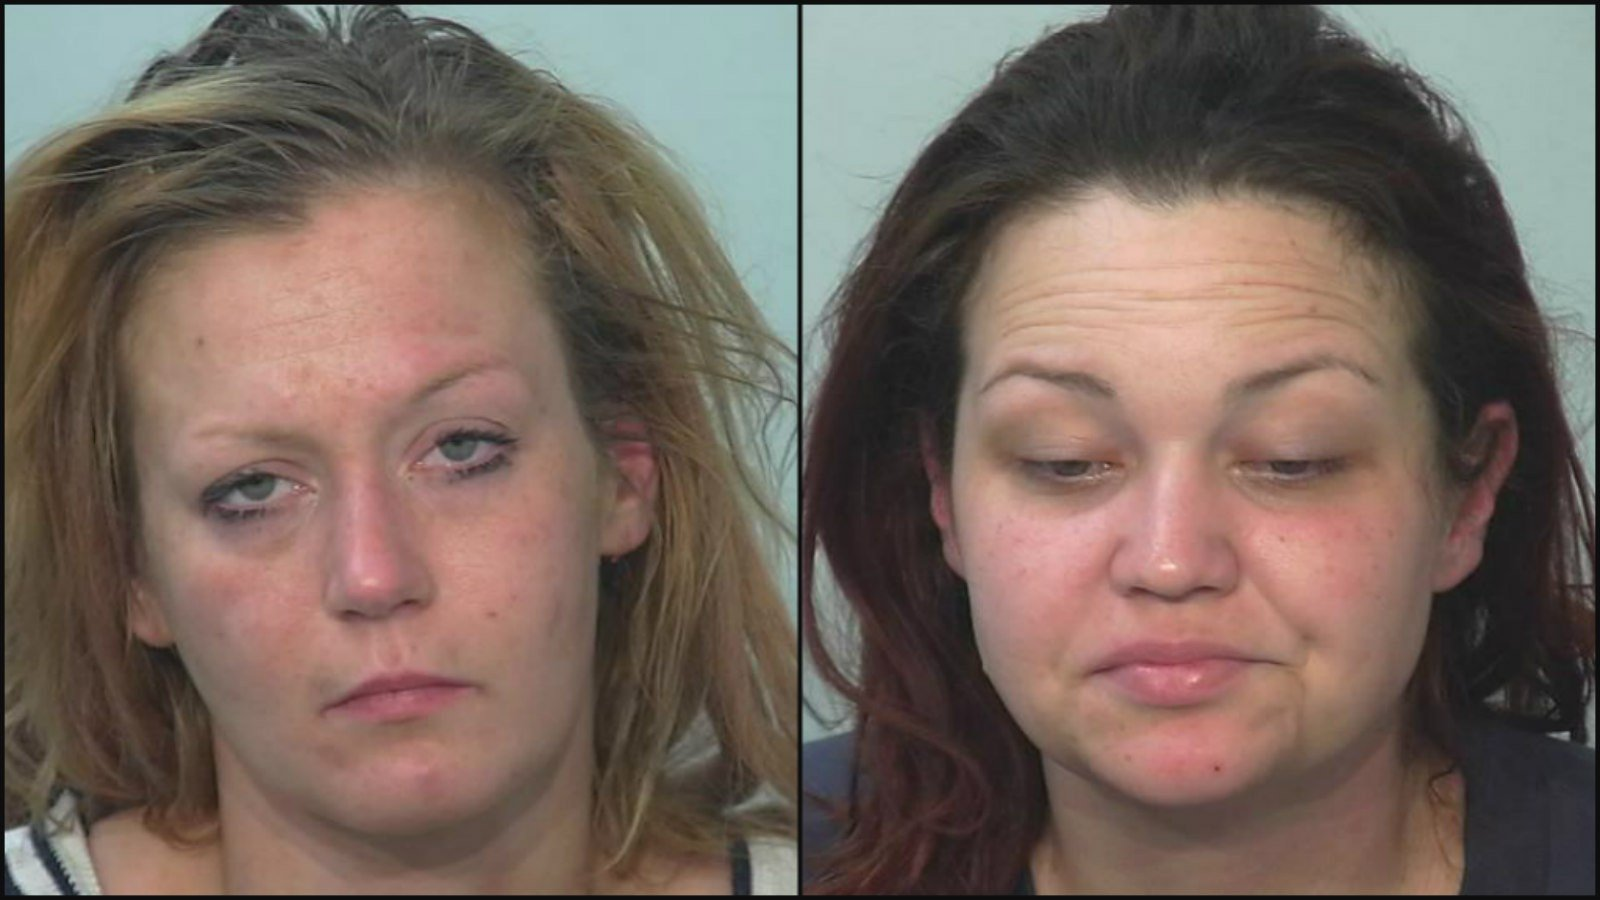 Ashlye Nichols (left) Meghan Clifford (right) (Photo//Allen County Sheriff's Department)